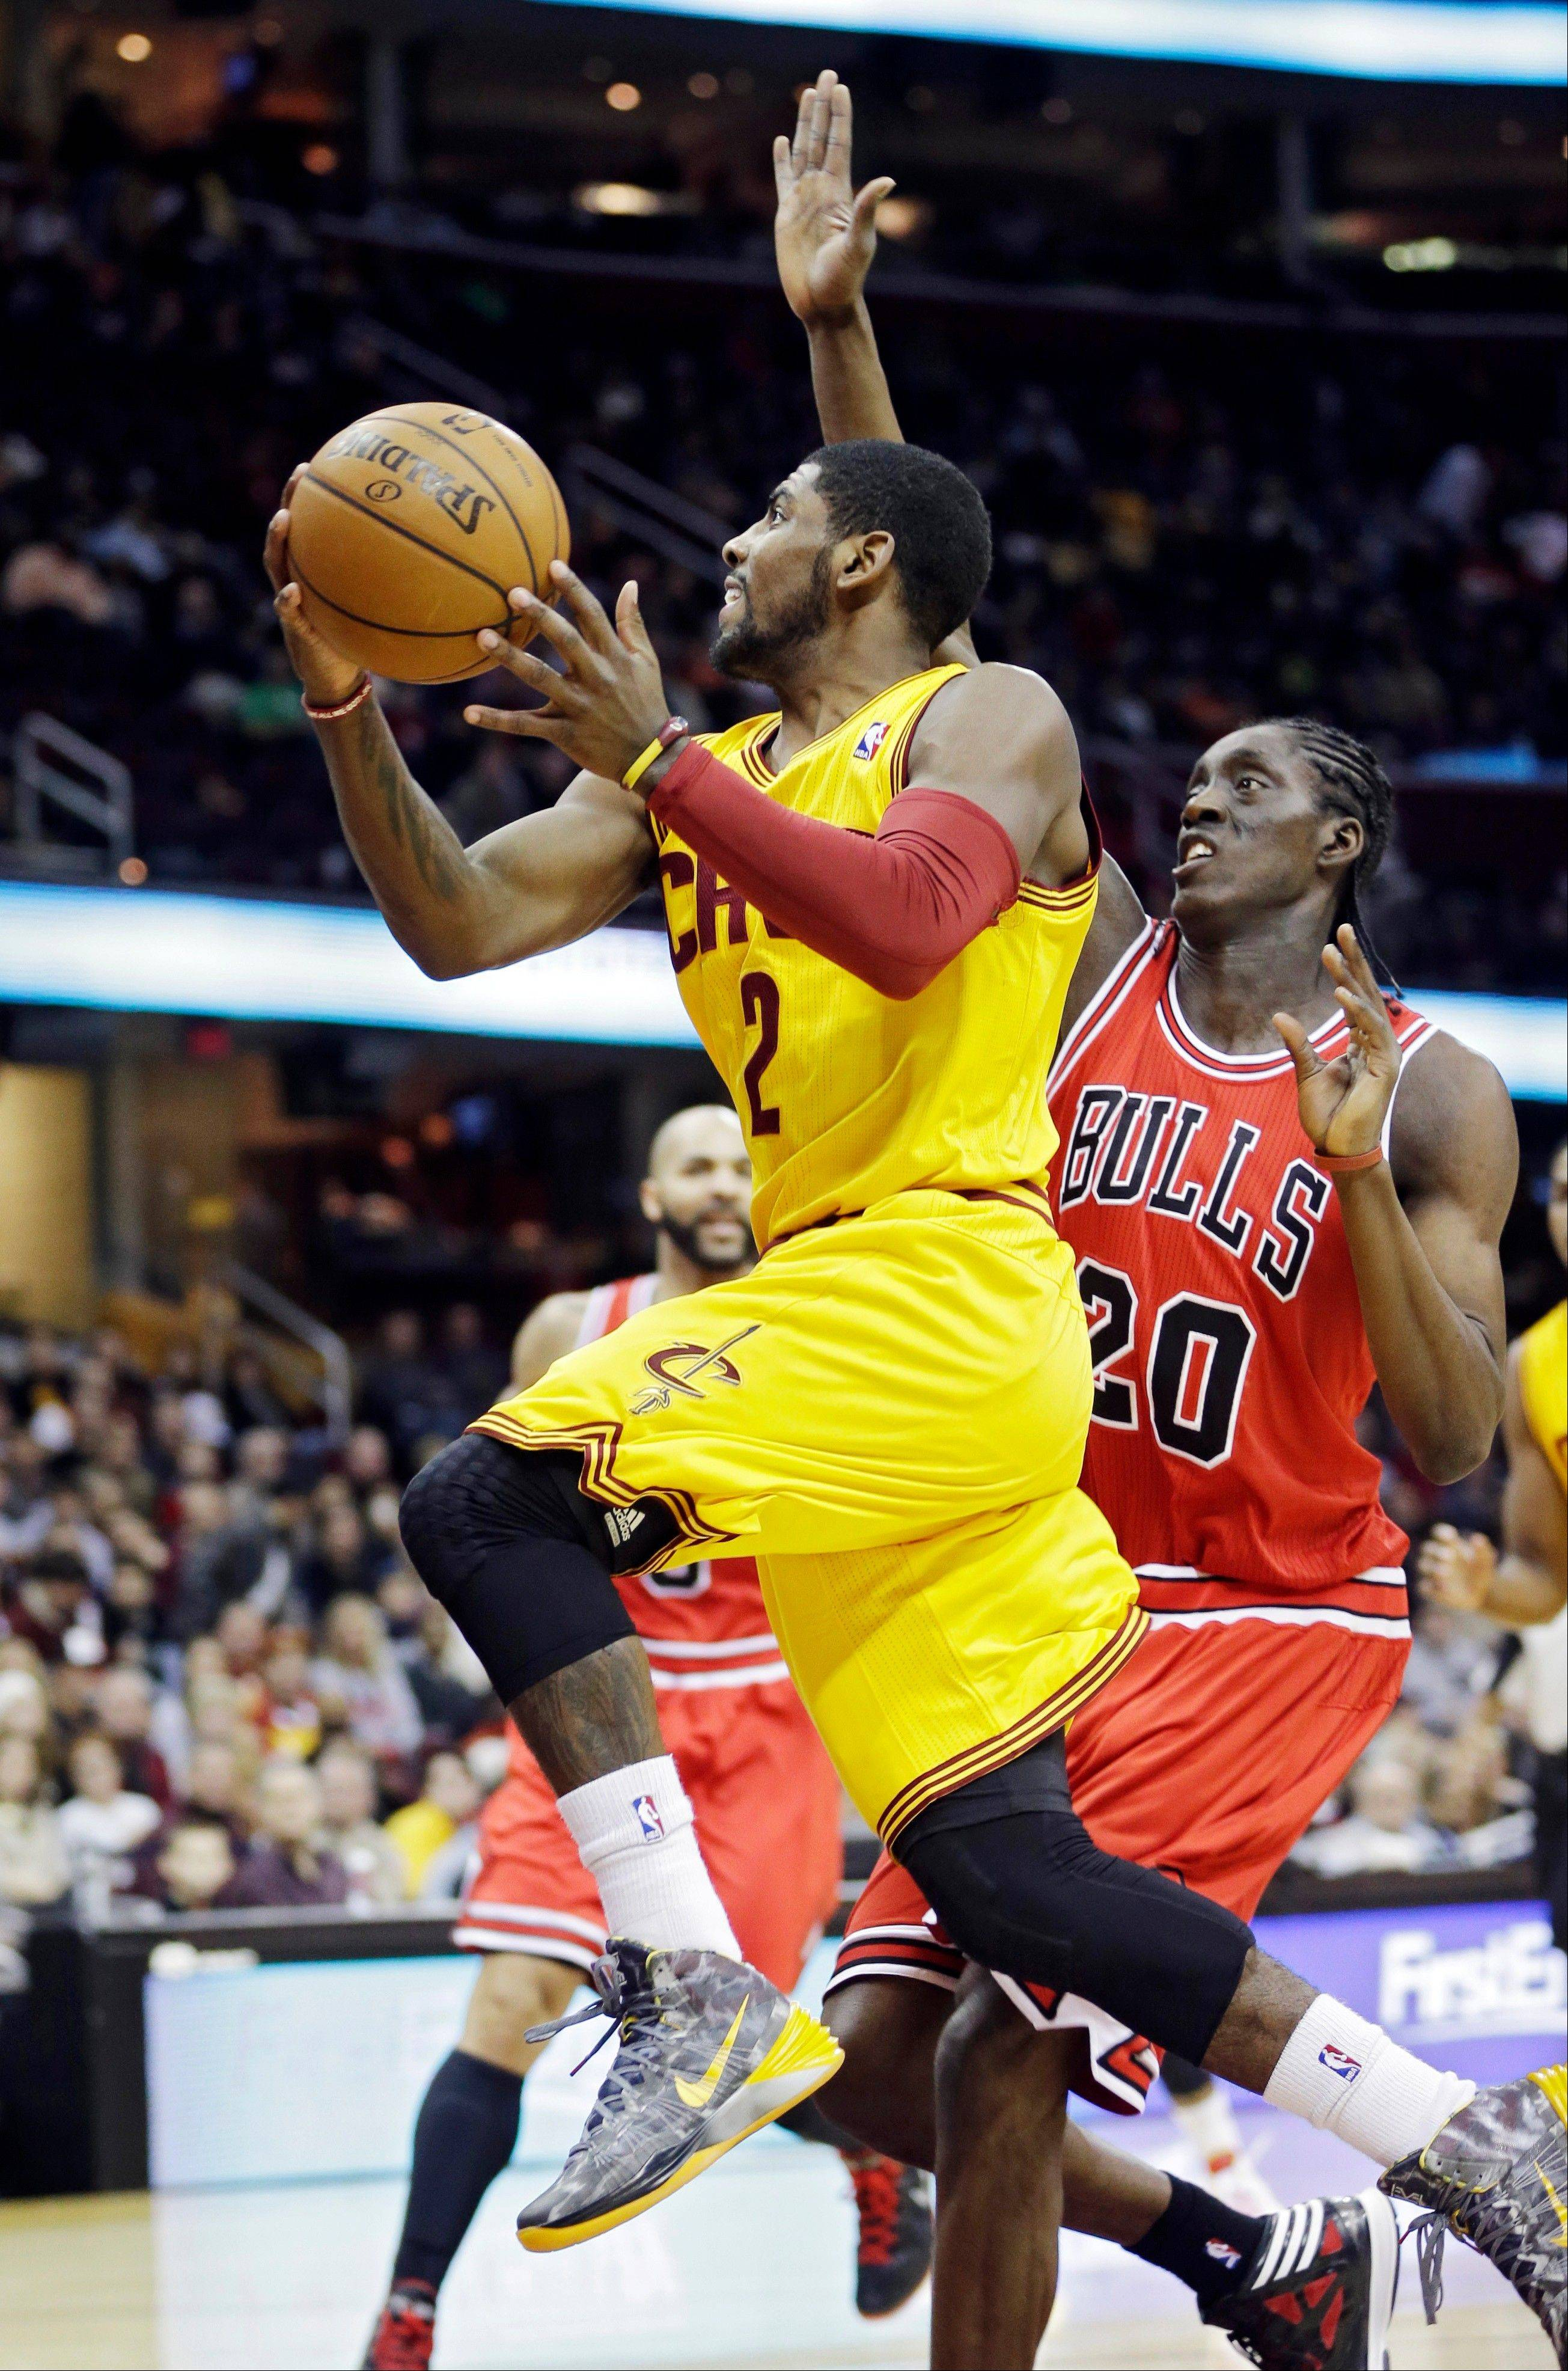 The Cavaliers' Kyrie Irving drives past Bulls rookie Tony Snell, who scored 13 of his 18 points in the second half to help the Bulls stage a comeback.